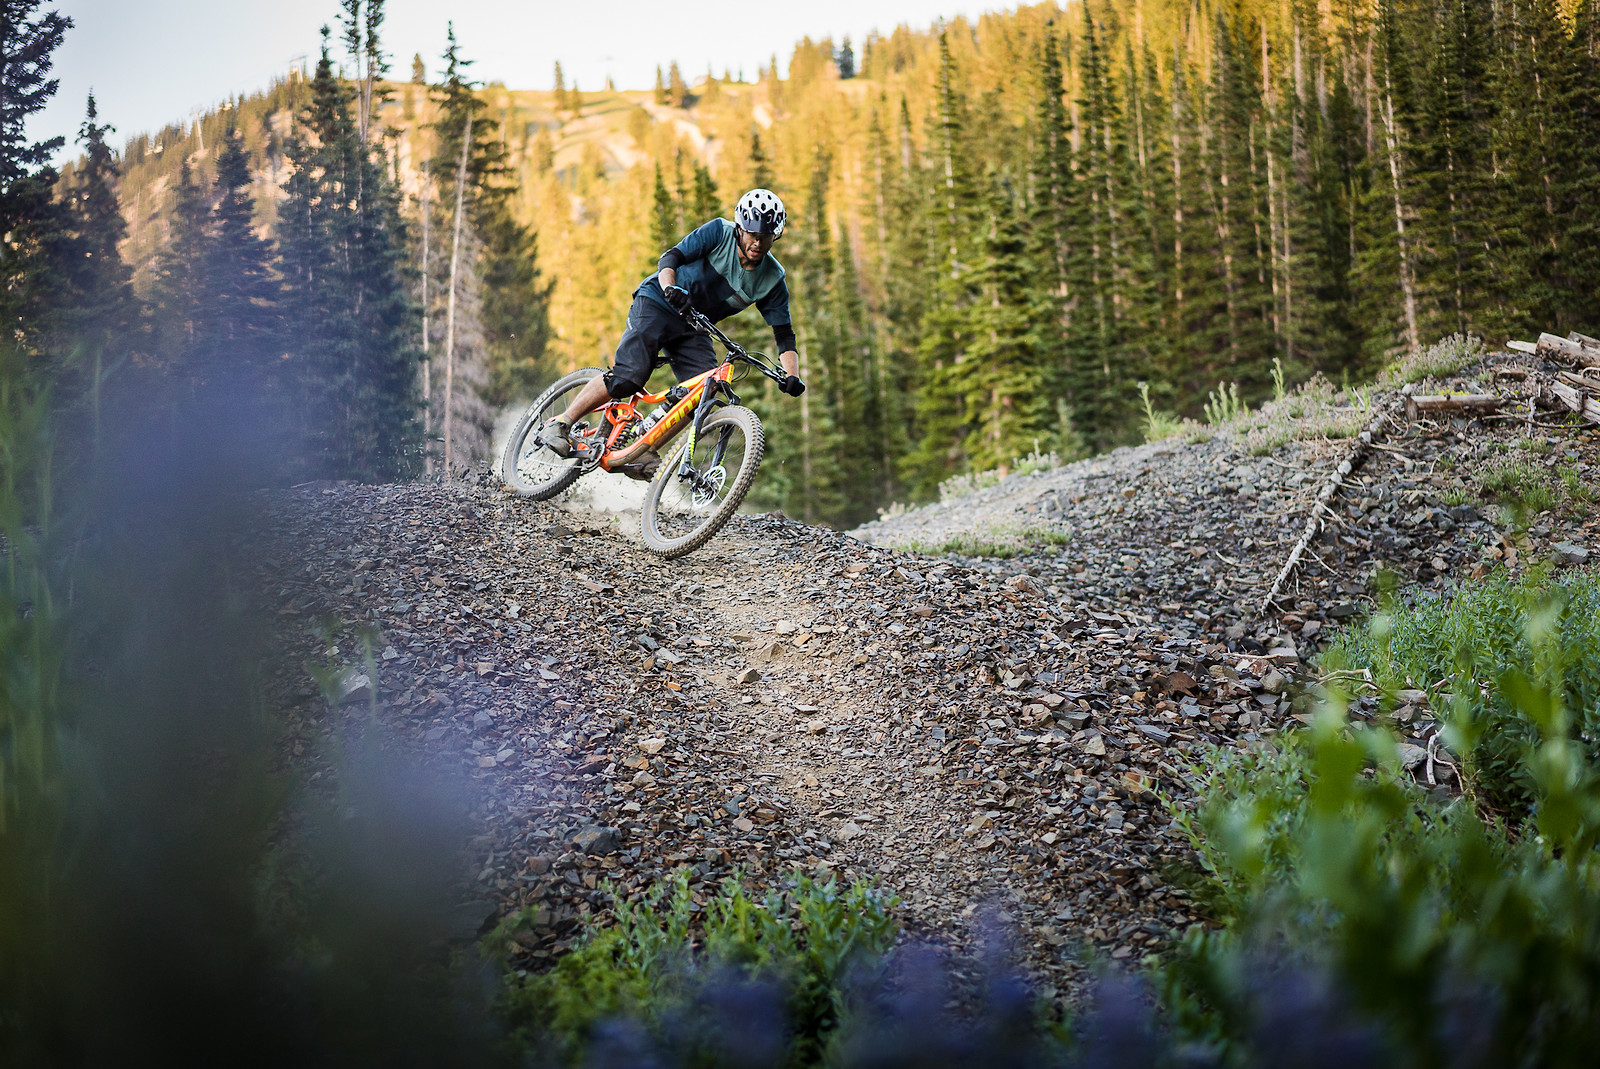 What the Shale - Conor_Barry - Mountain Biking Pictures - Vital MTB